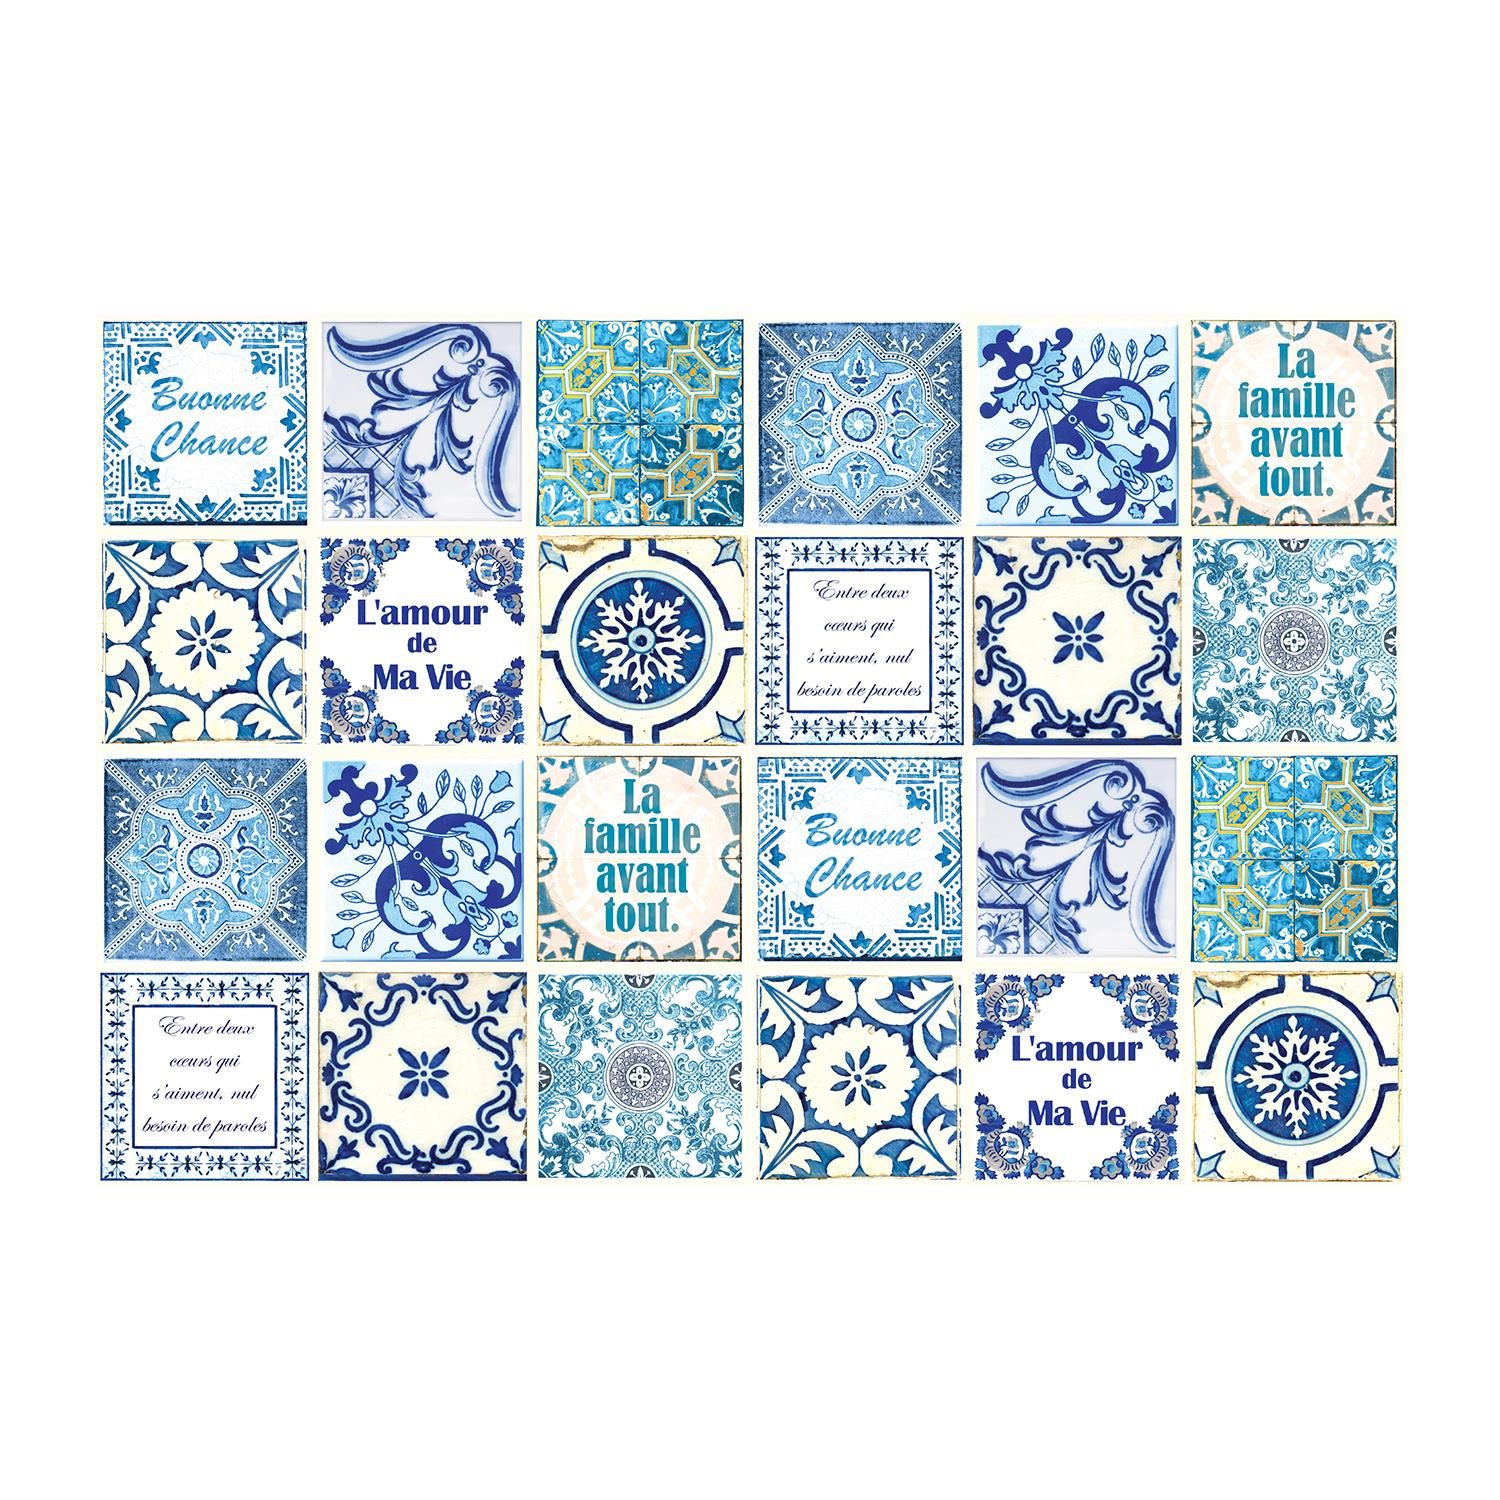 French Quote Classic Blue Tile Sticker - 15 cm x 15 cm - 24 pcs Tiles Wall Stickers, Kitchen, Bathroom, Living room